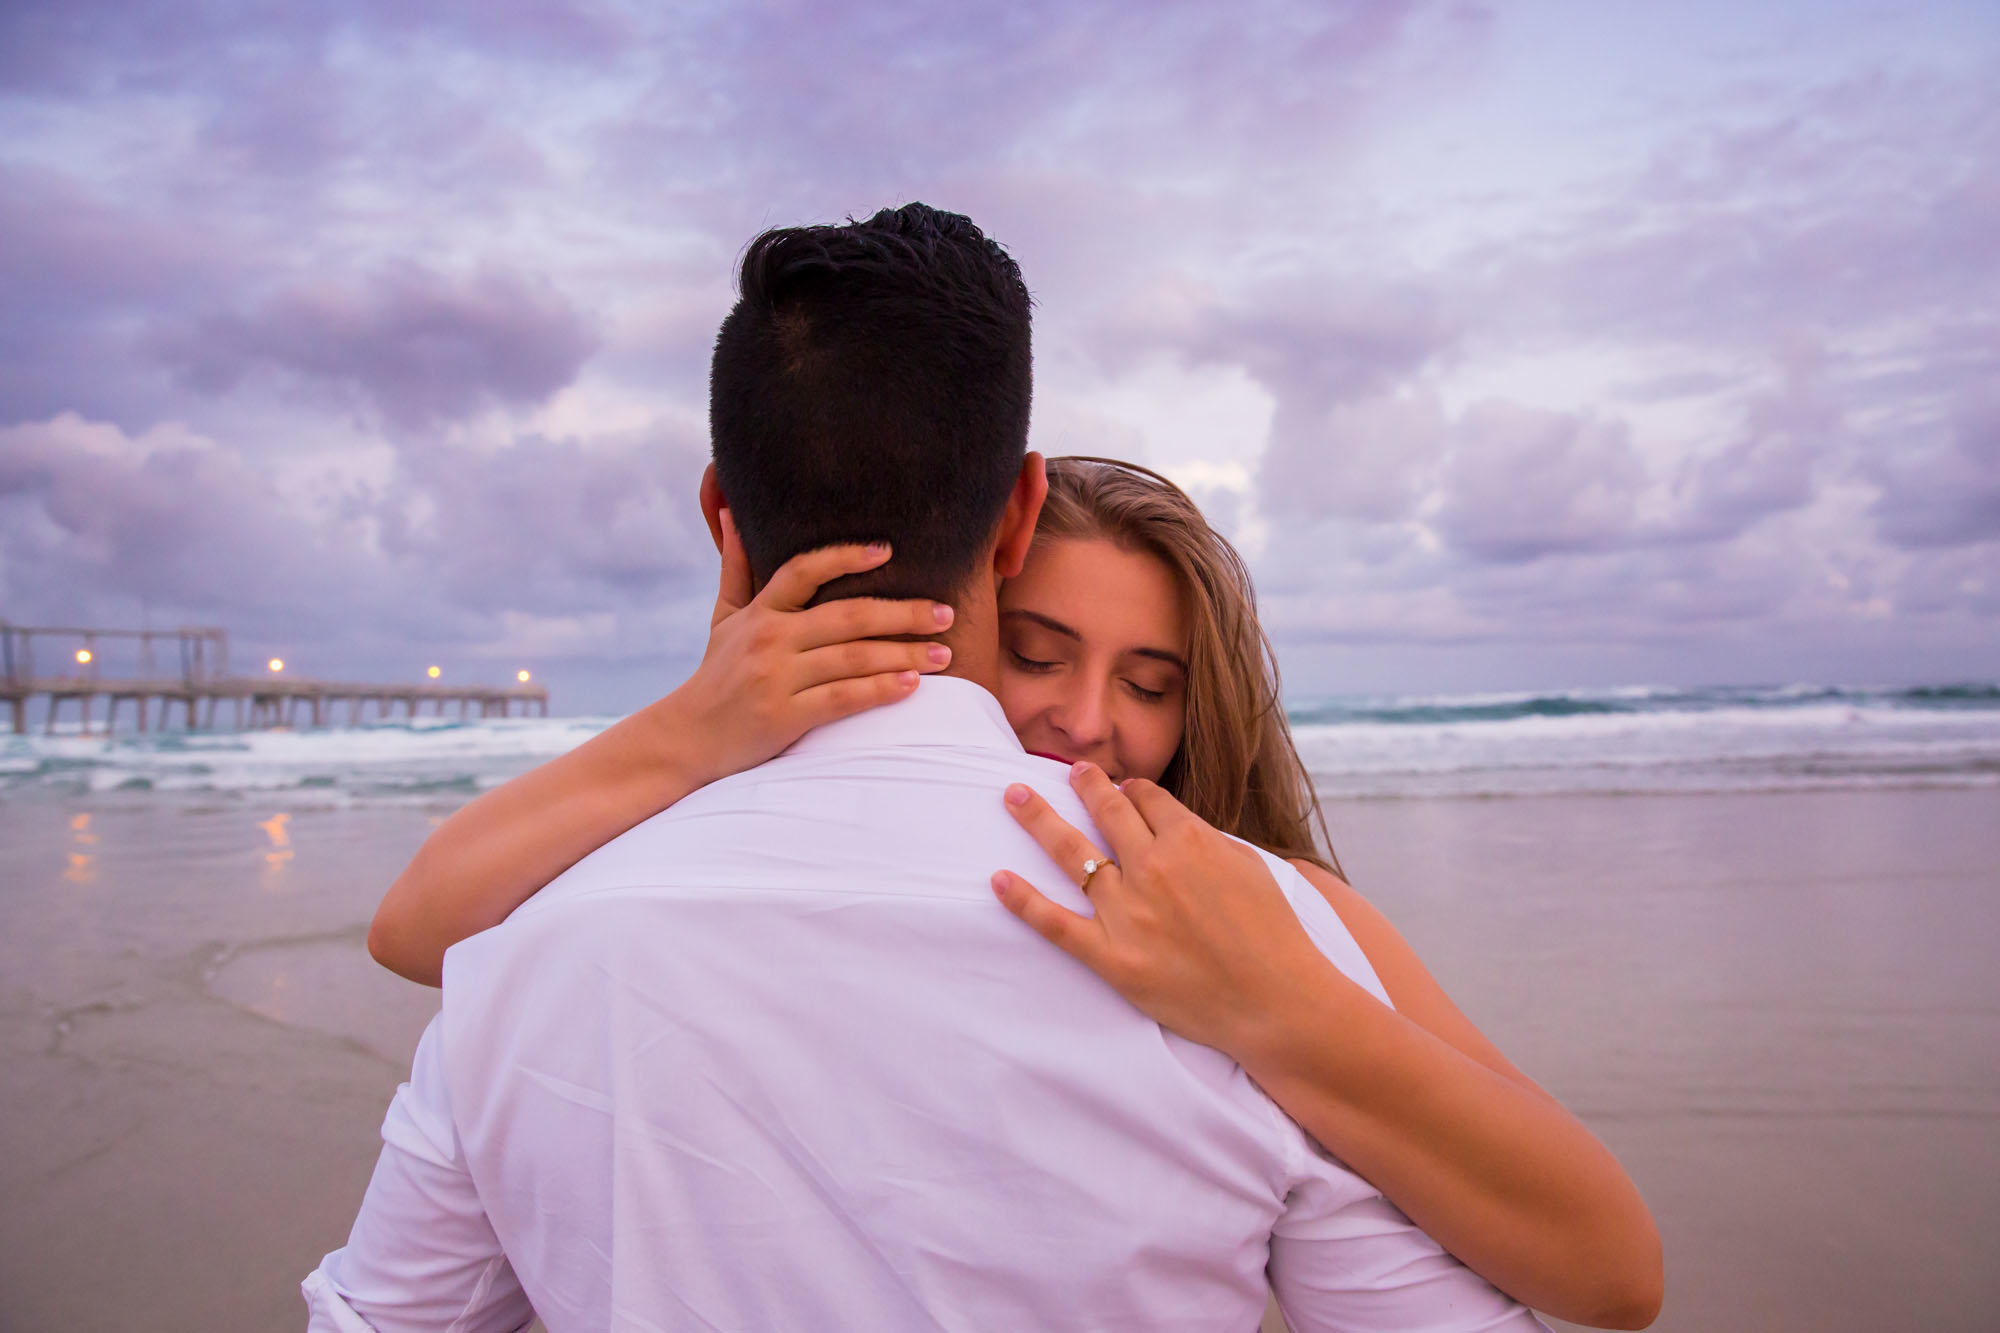 Sunset Gold Coast Engagement Session Photographer Anna Osetroff